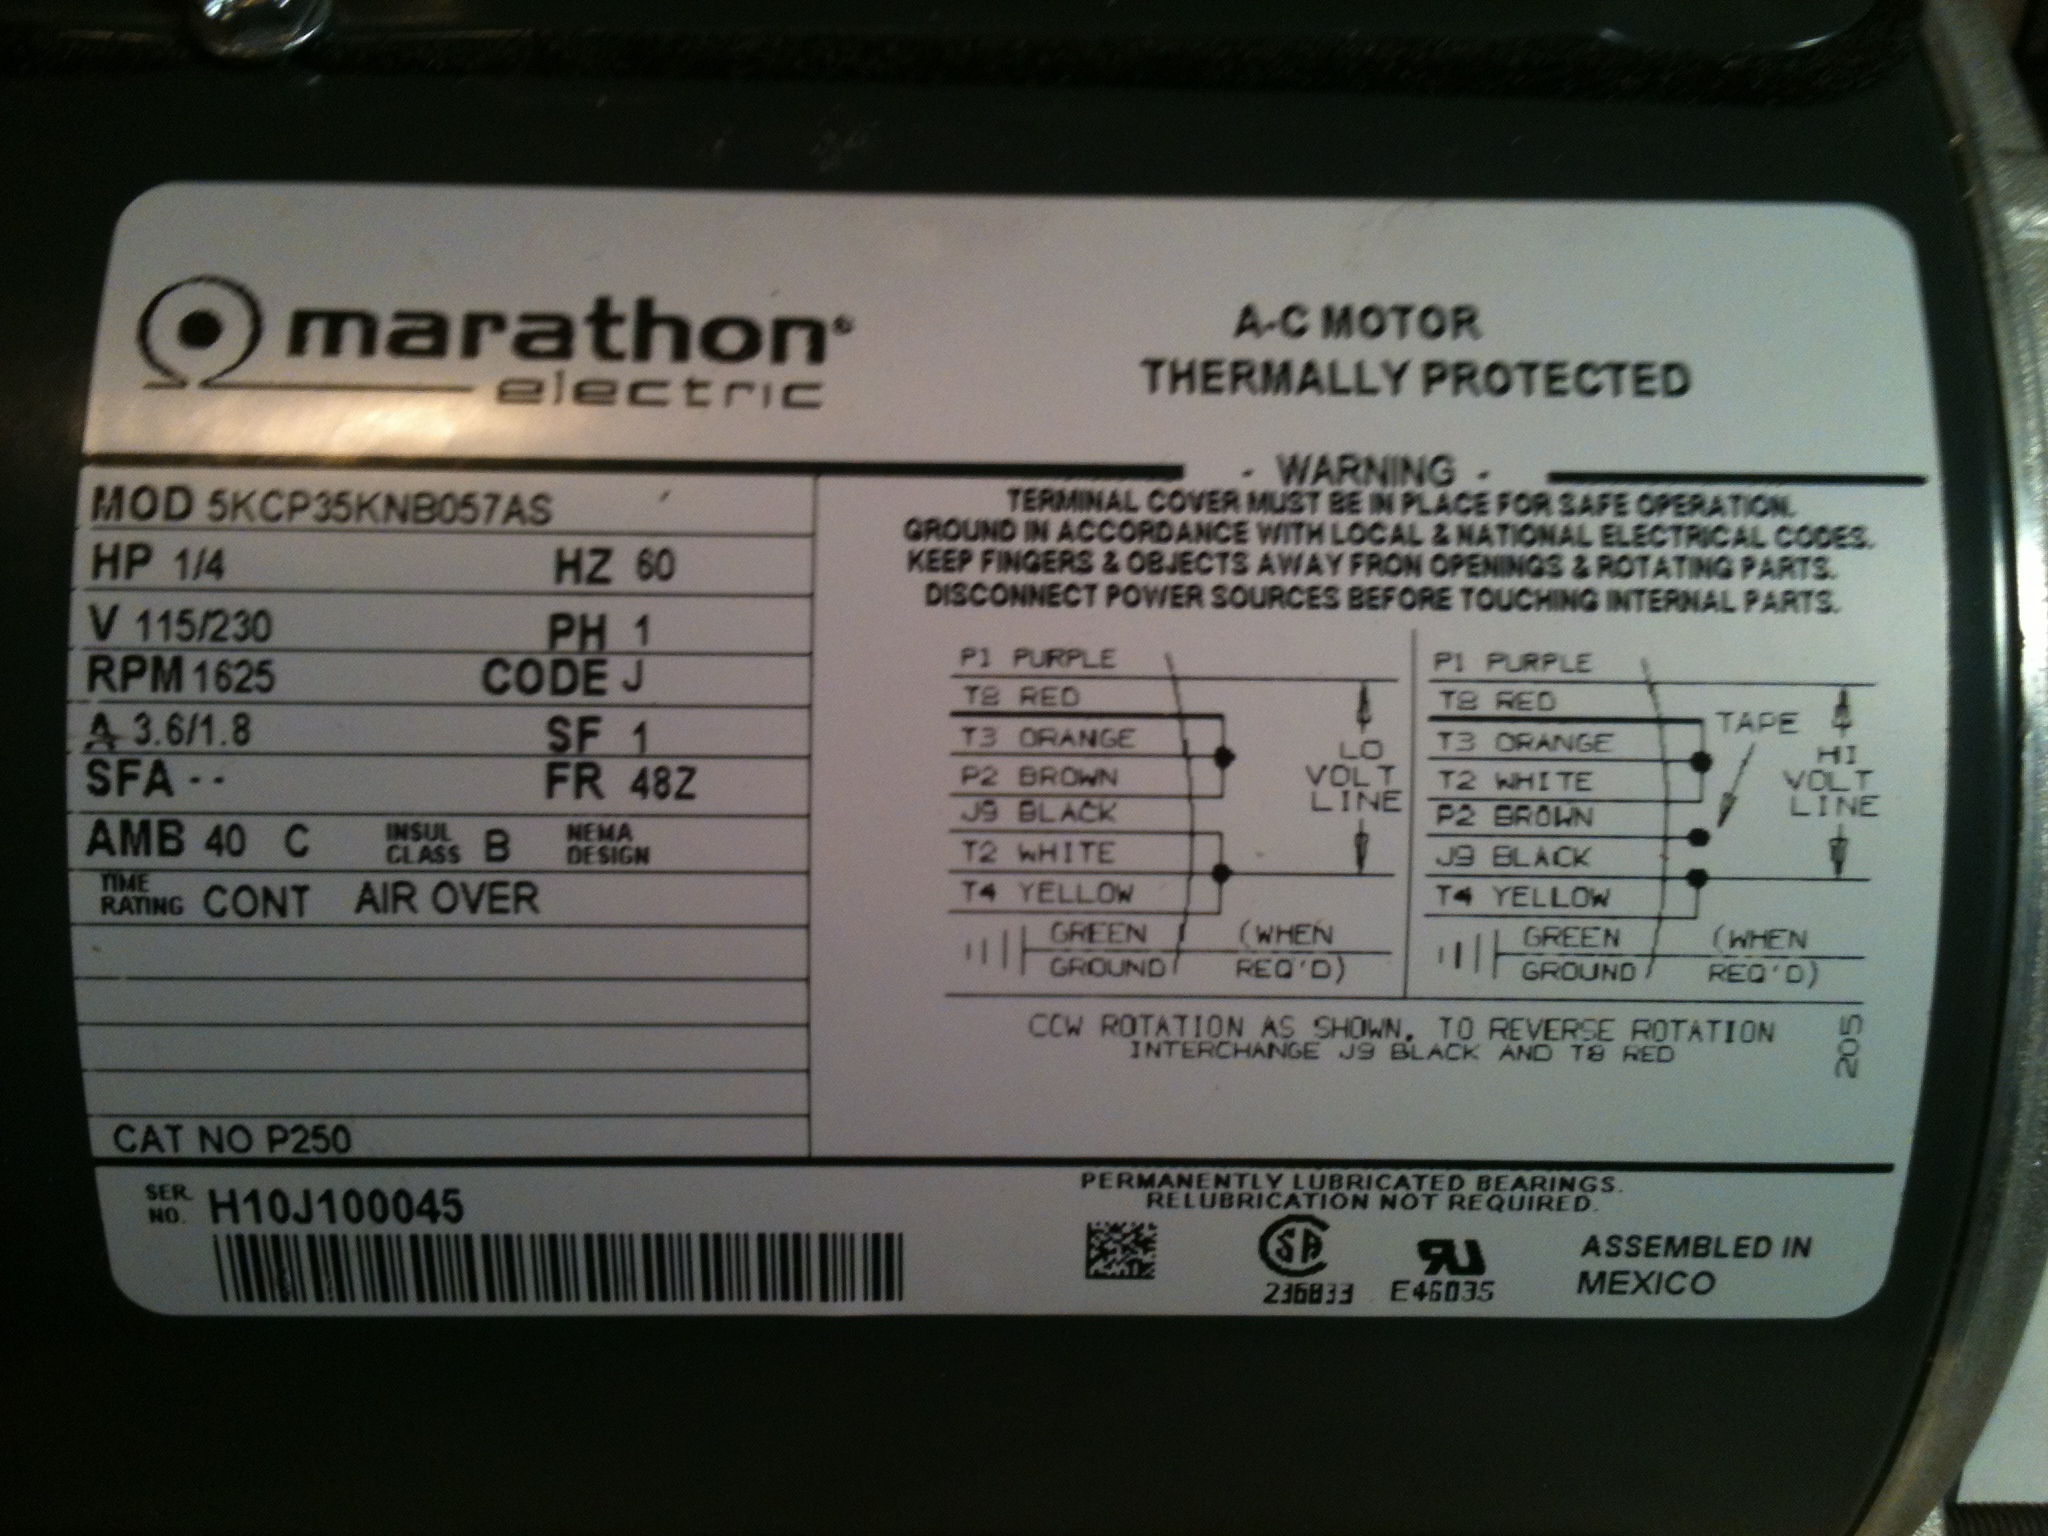 2012 01 24_021217_marathonmotor marathon motor wiring diagram marathon electric wiring diagram magnetek wiring diagram at crackthecode.co